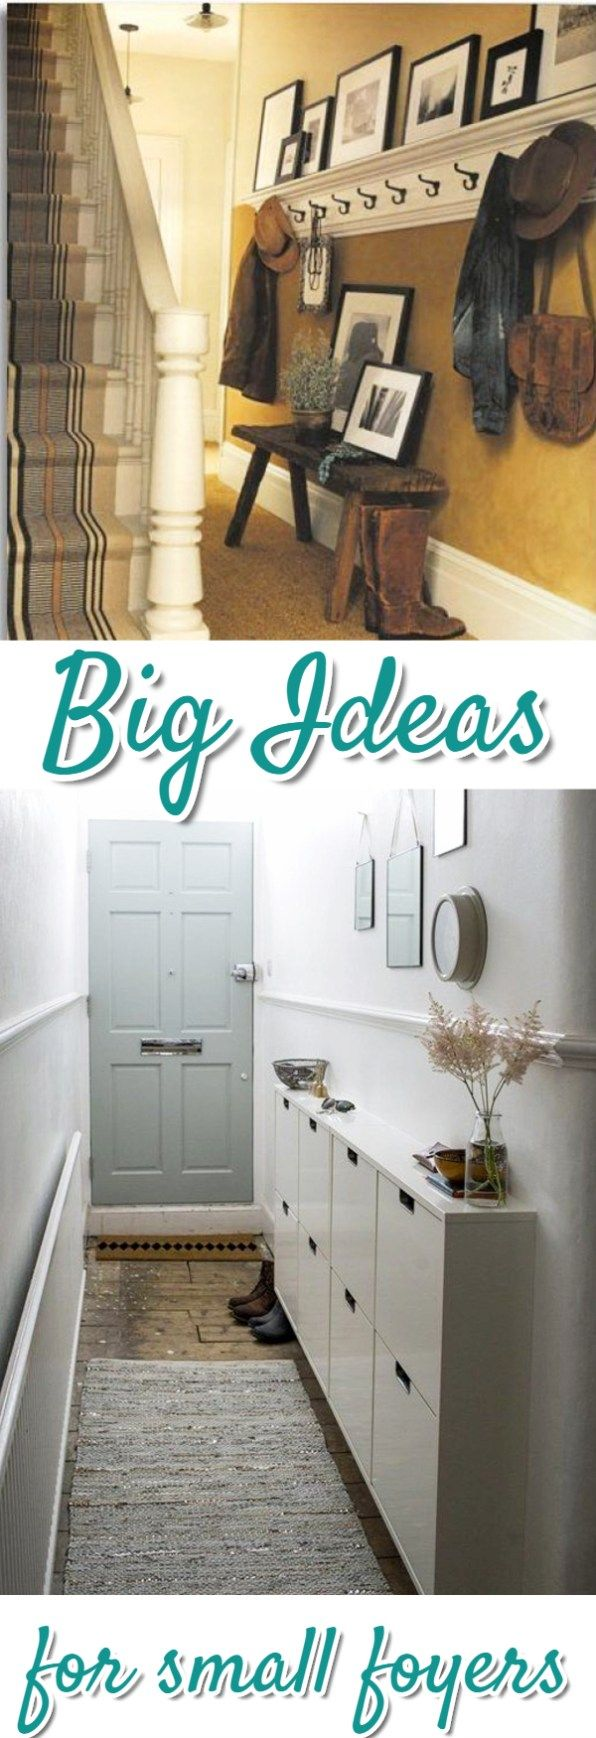 Foyers And Entryways Ideas : Best small foyers ideas on pinterest entrance decor